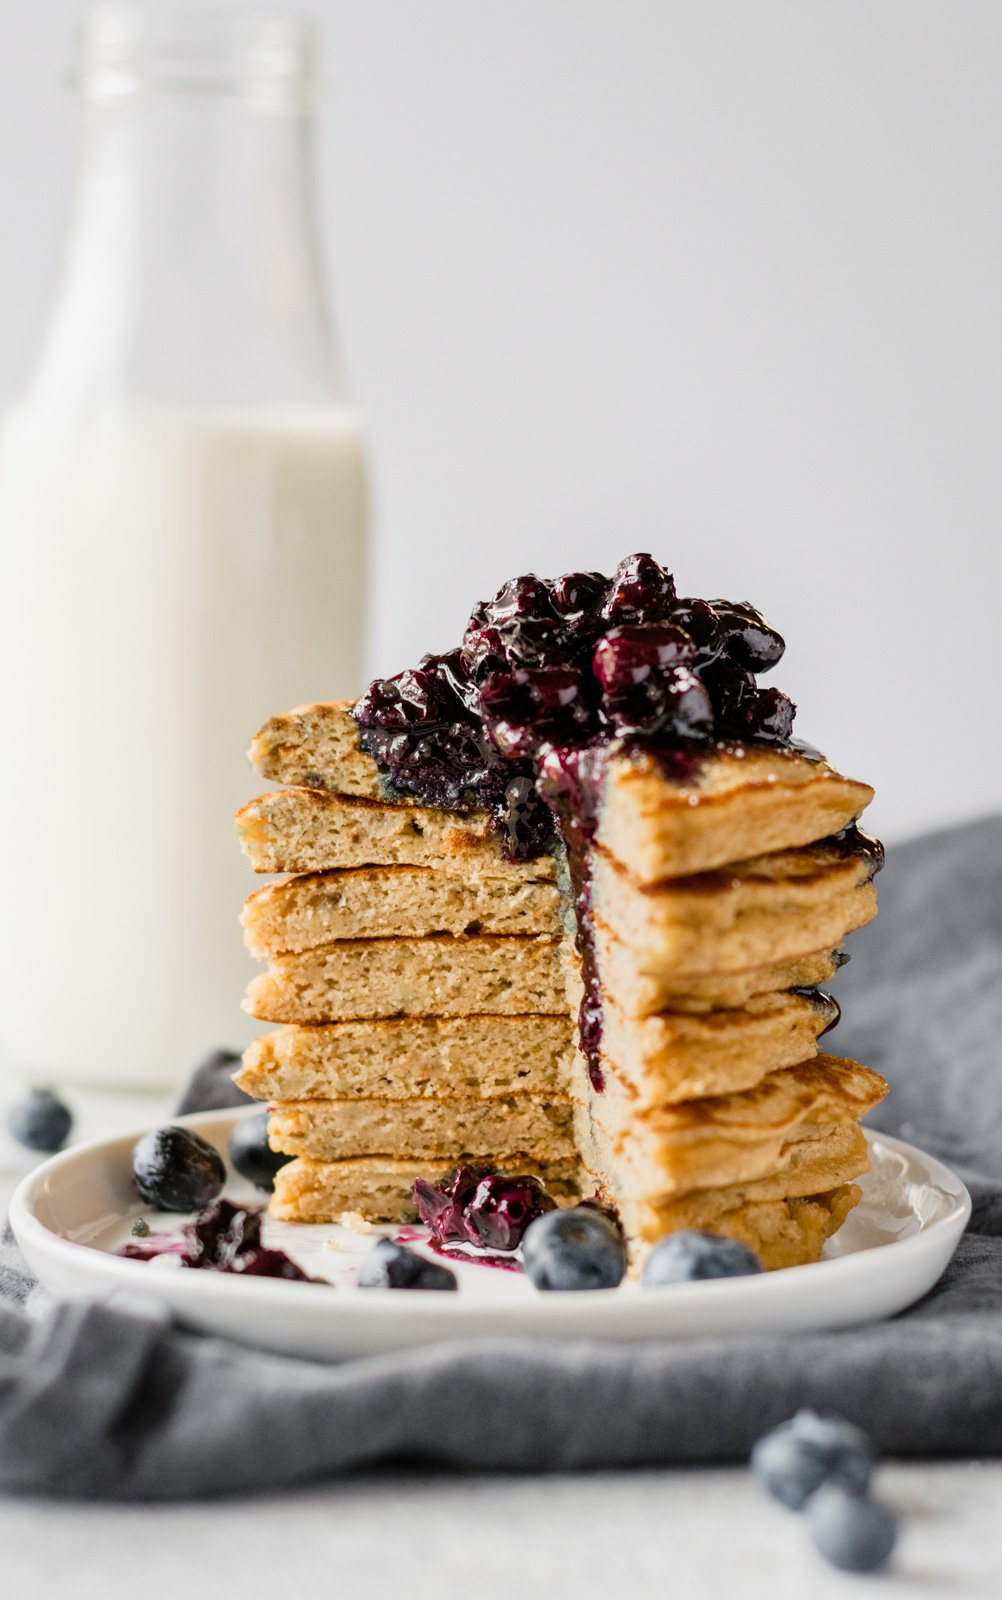 stack of paleo pancakes with blueberry syrup on top and bottle of milk in the background